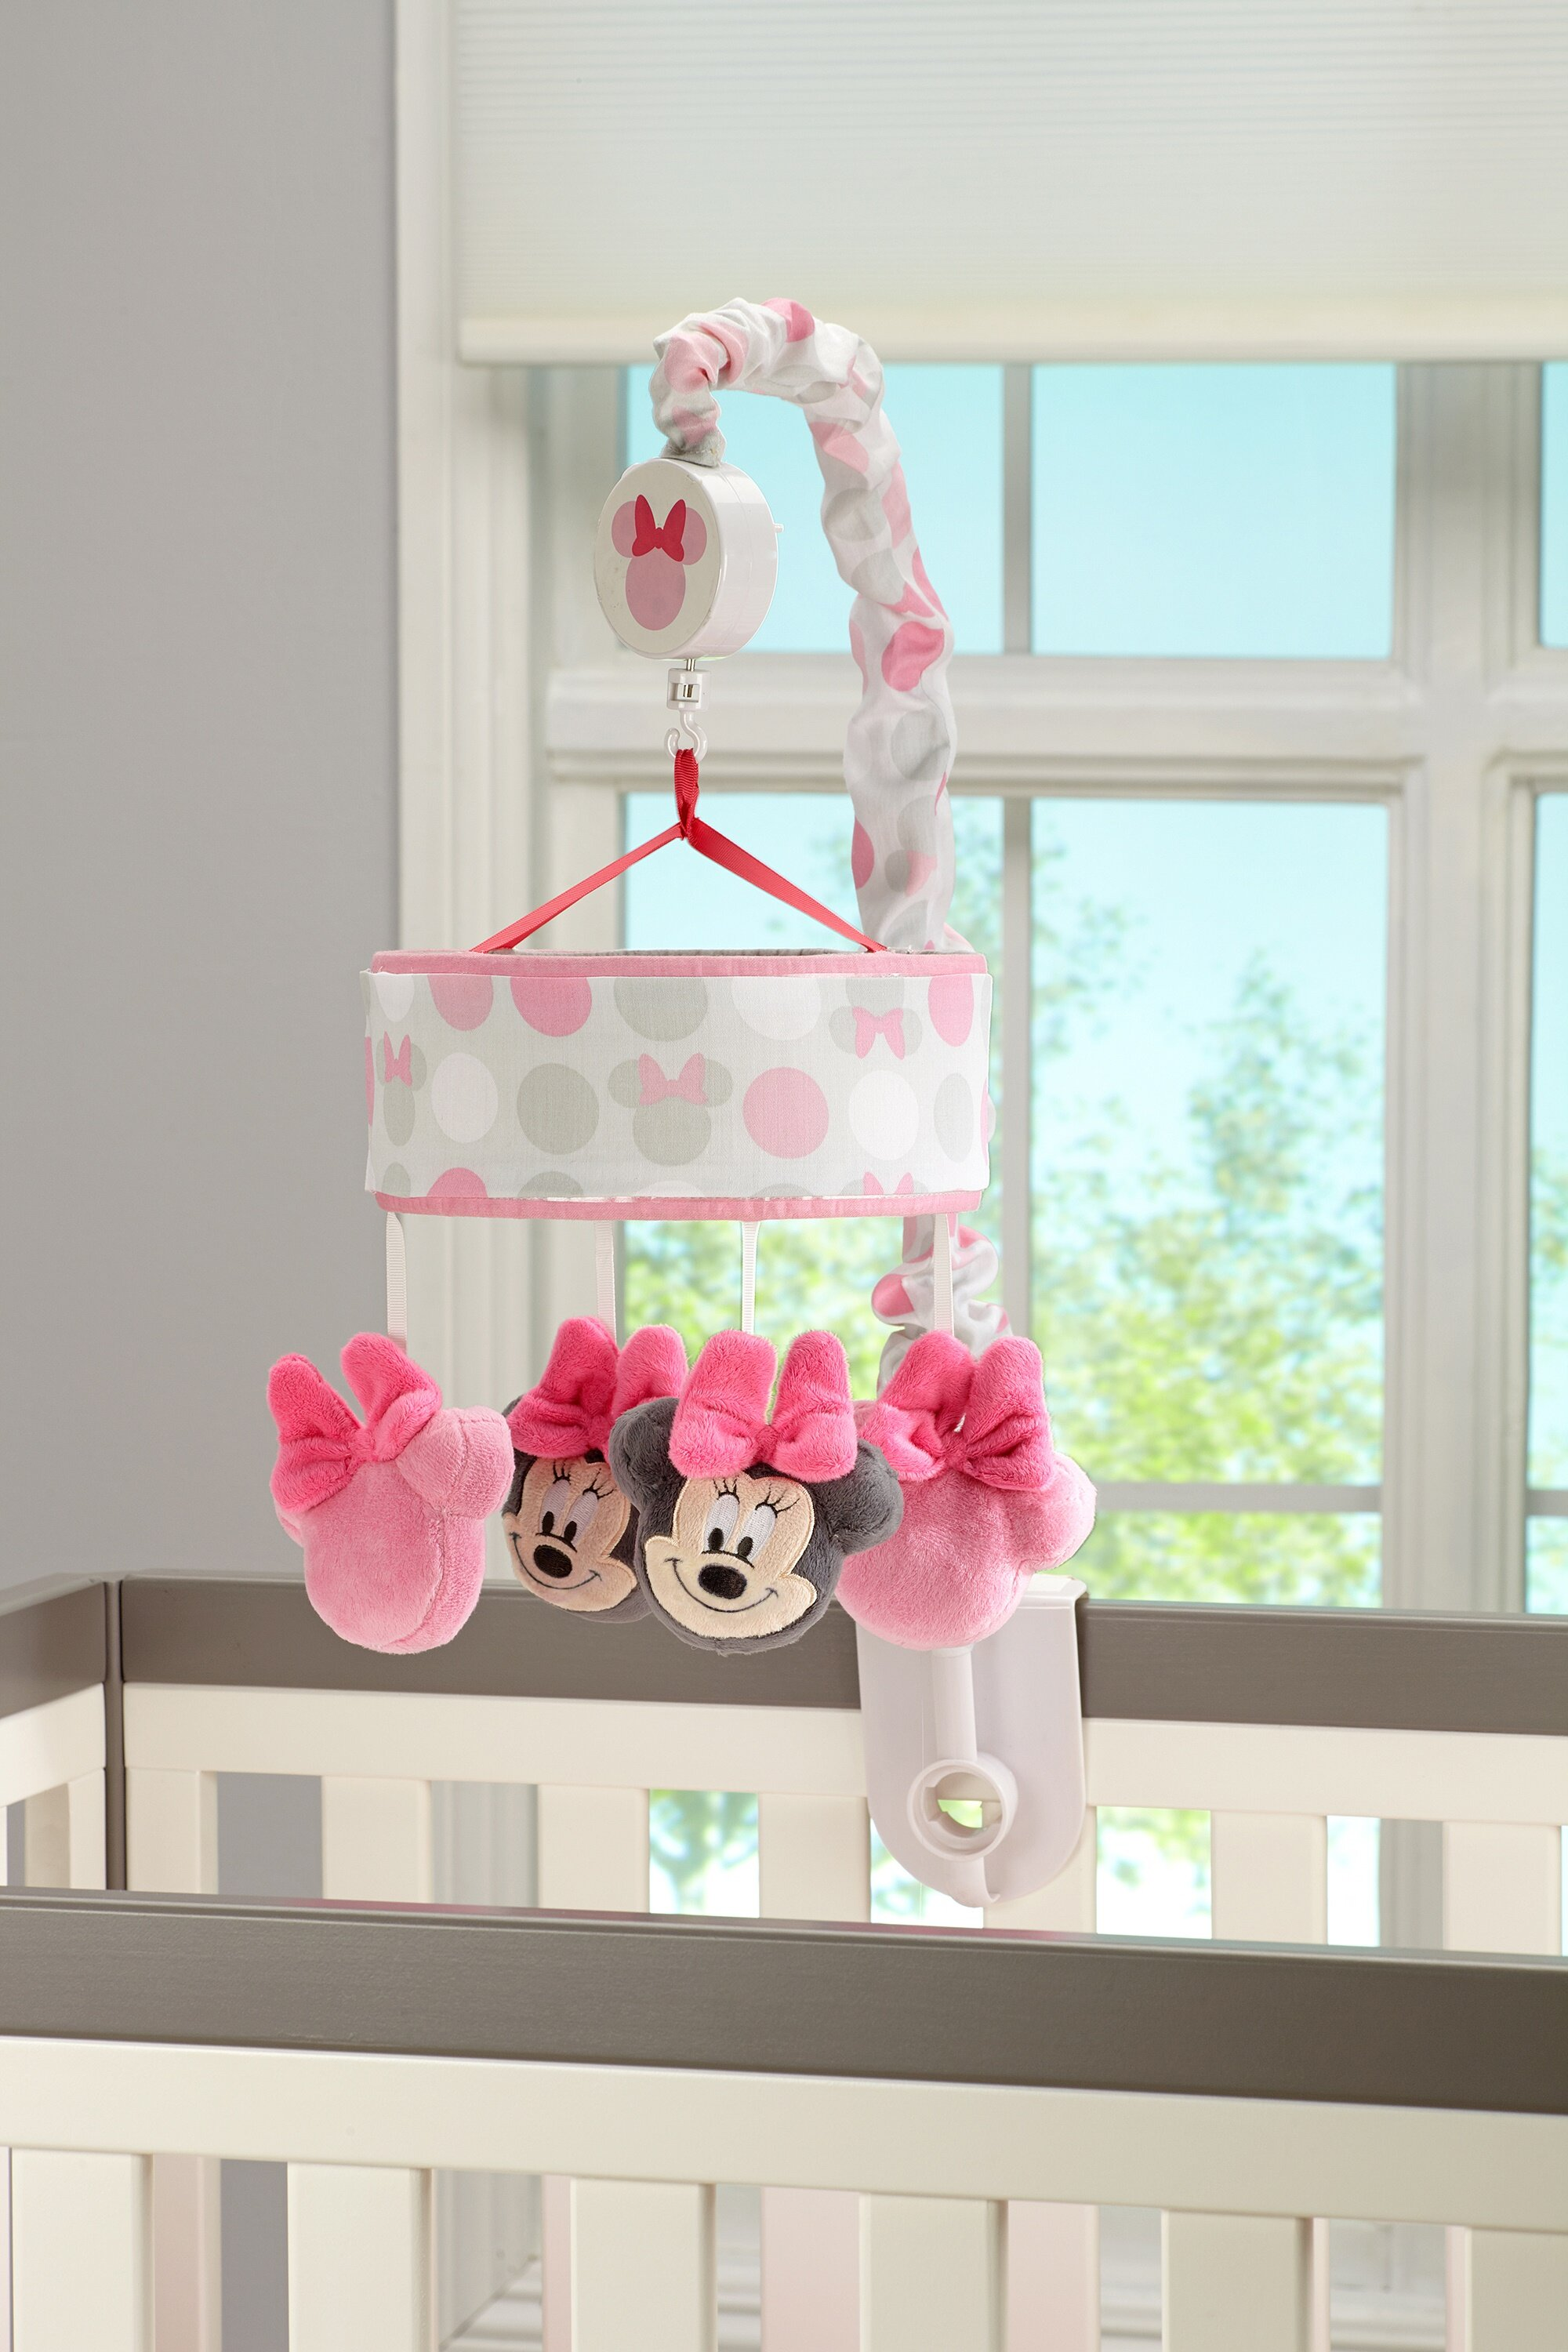 d58bef18de21 Carter s Disney Minnie Mouse Musical Mobile